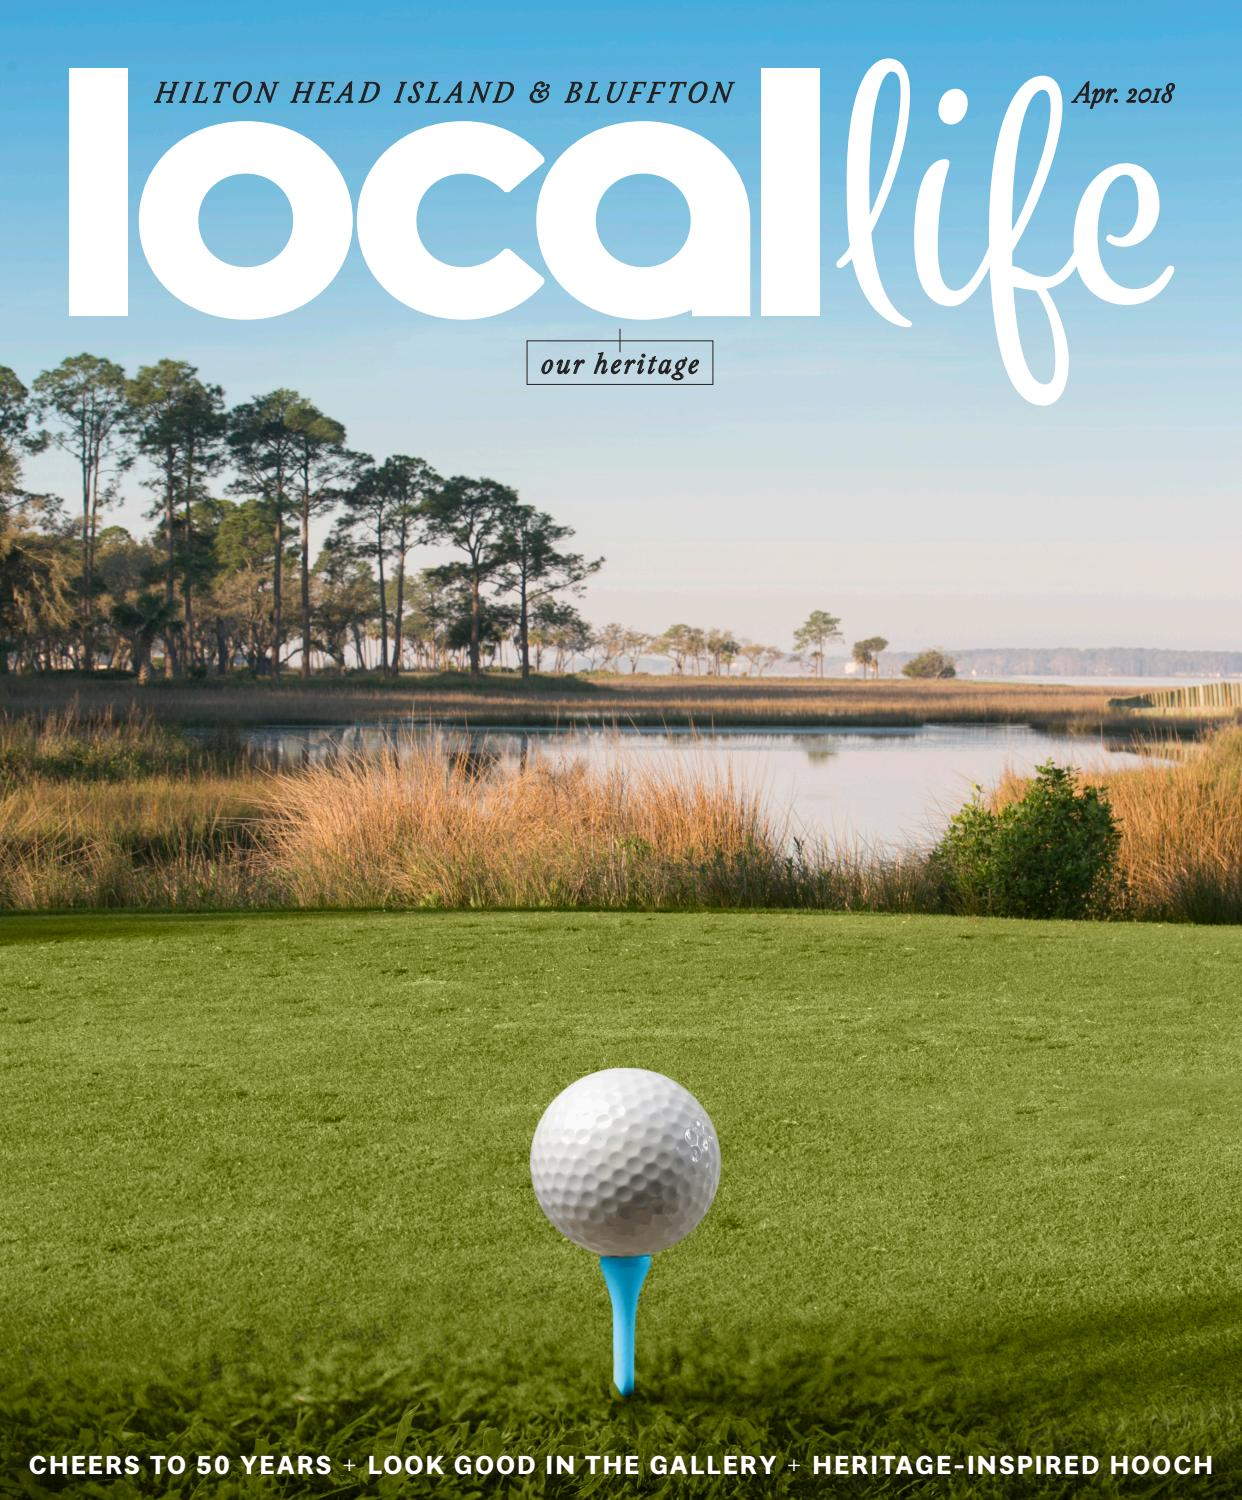 ef636b473a Local Life Magazine April 2018 by LocalLife - issuu